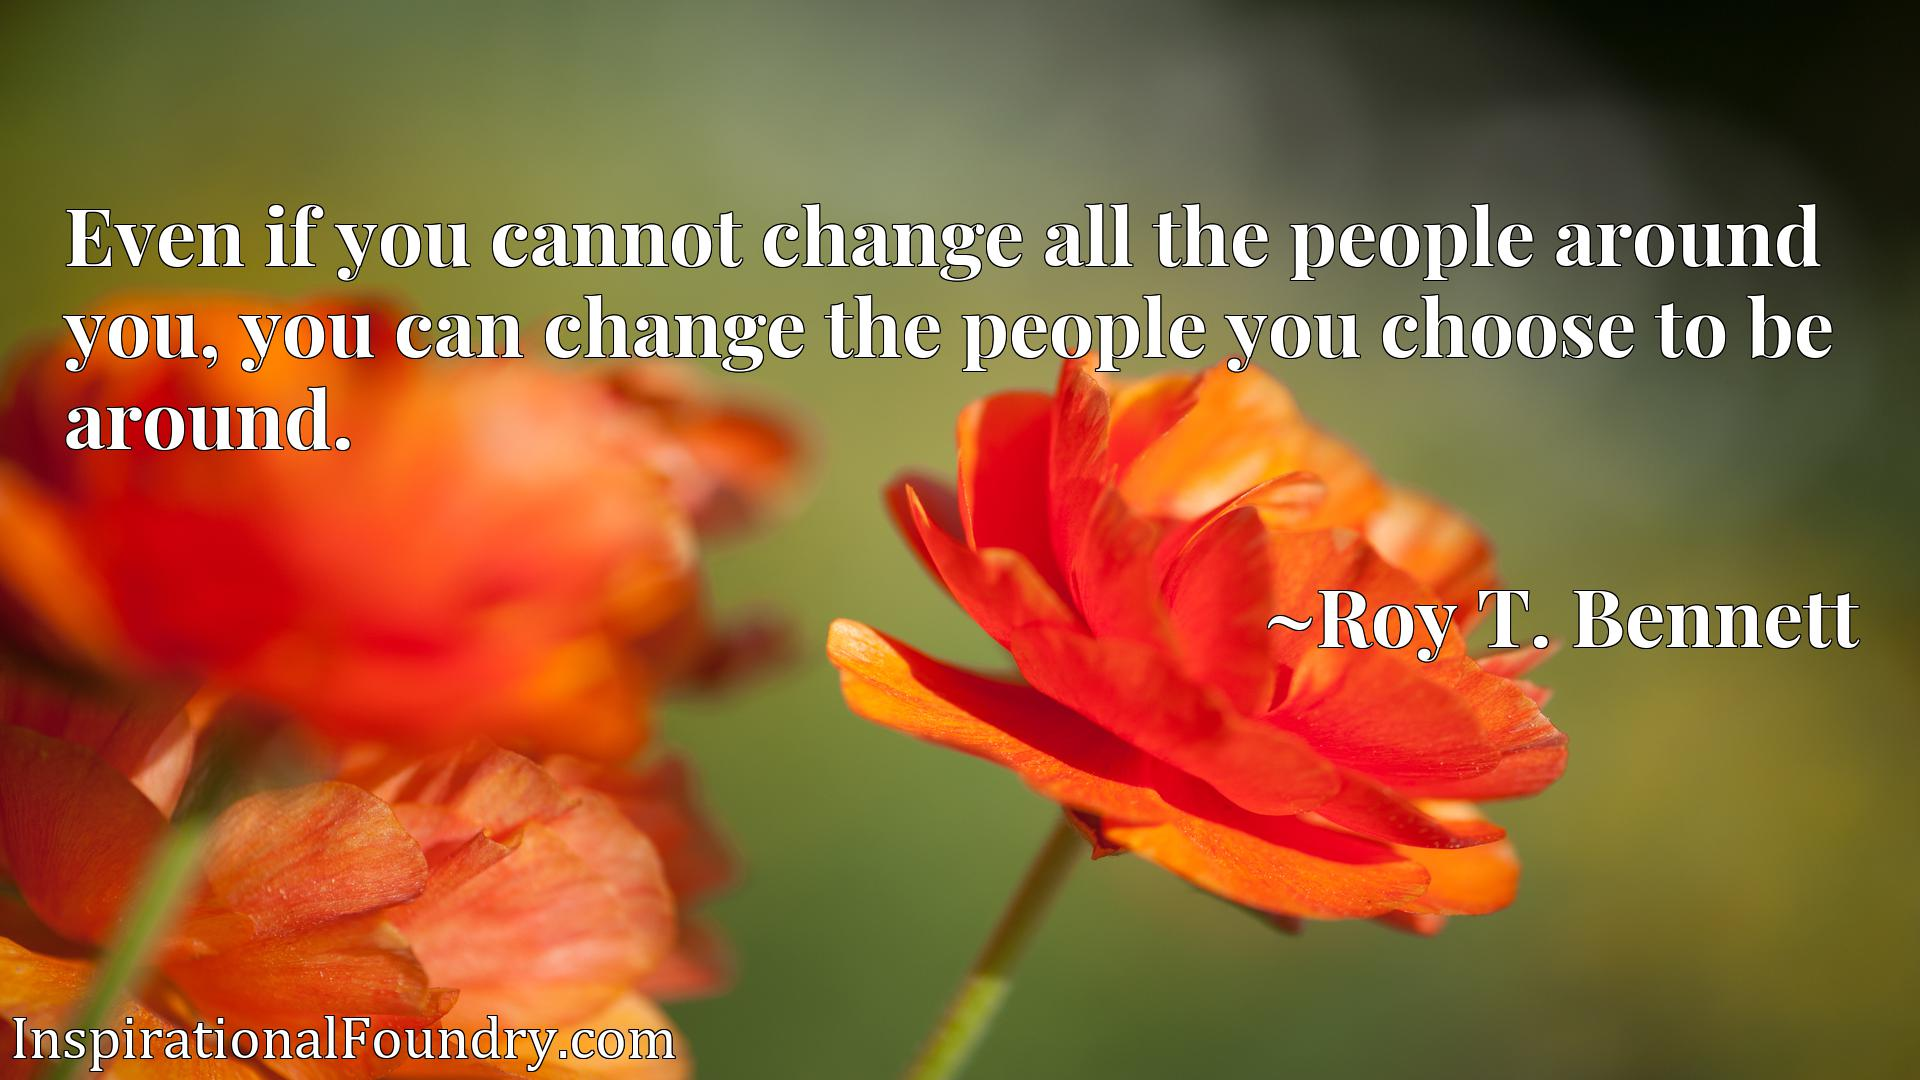 Even if you cannot change all the people around you, you can change the people you choose to be around.